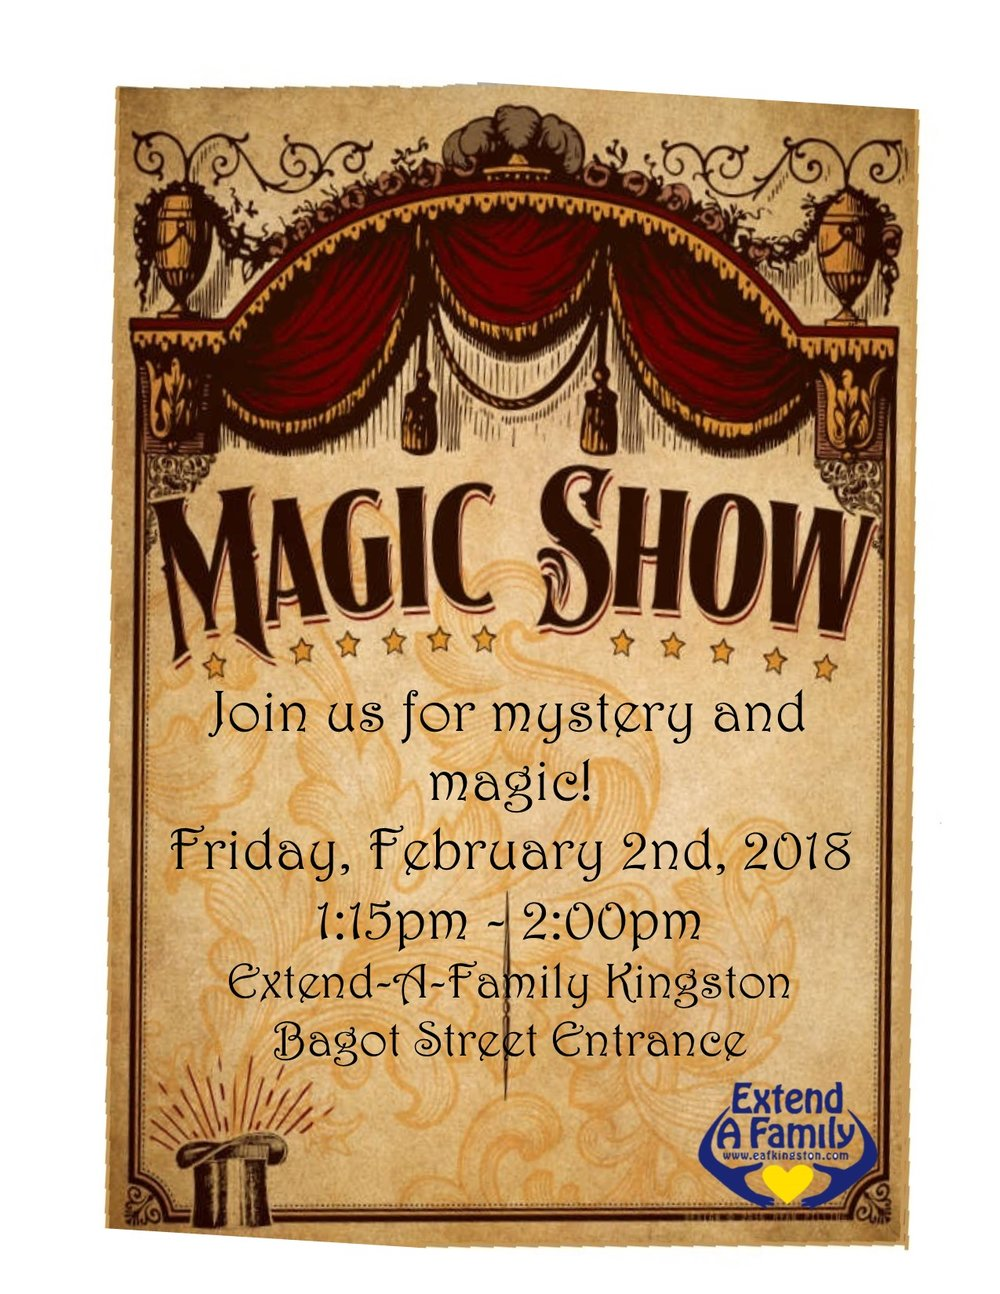 Magic Show Invite 01.25.2018.jpg